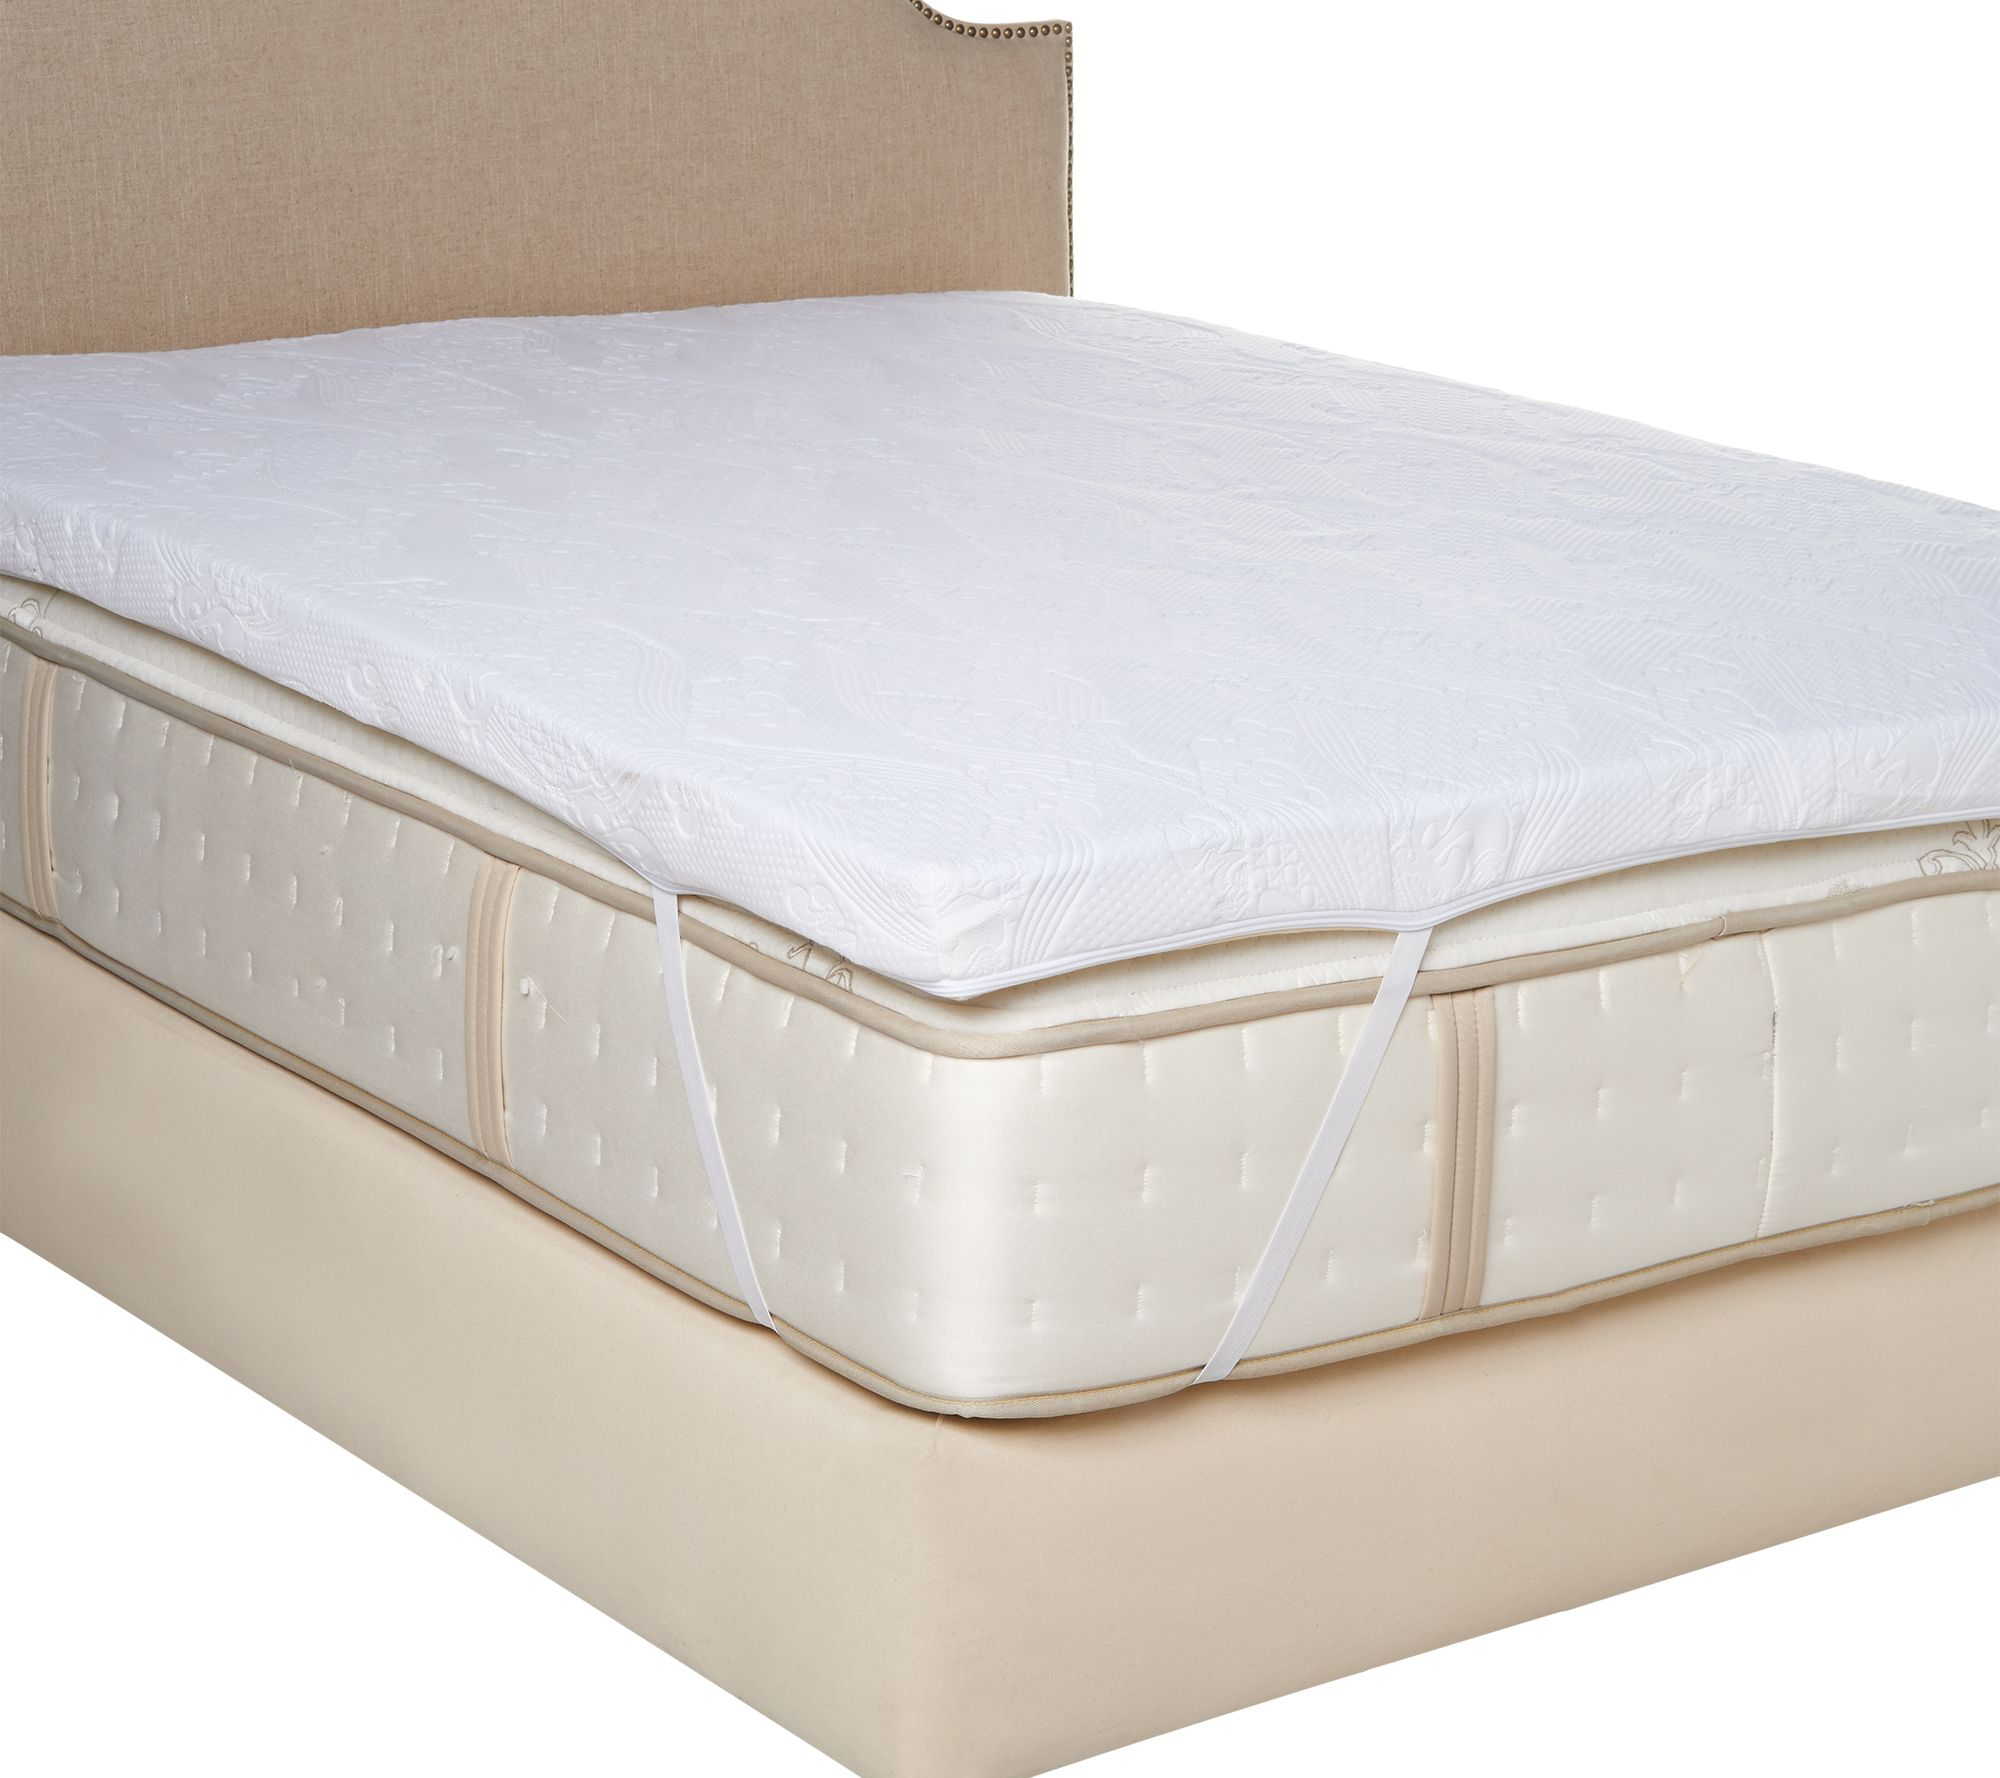 Dreams Mattress Guarantee Mypillow Premium 3